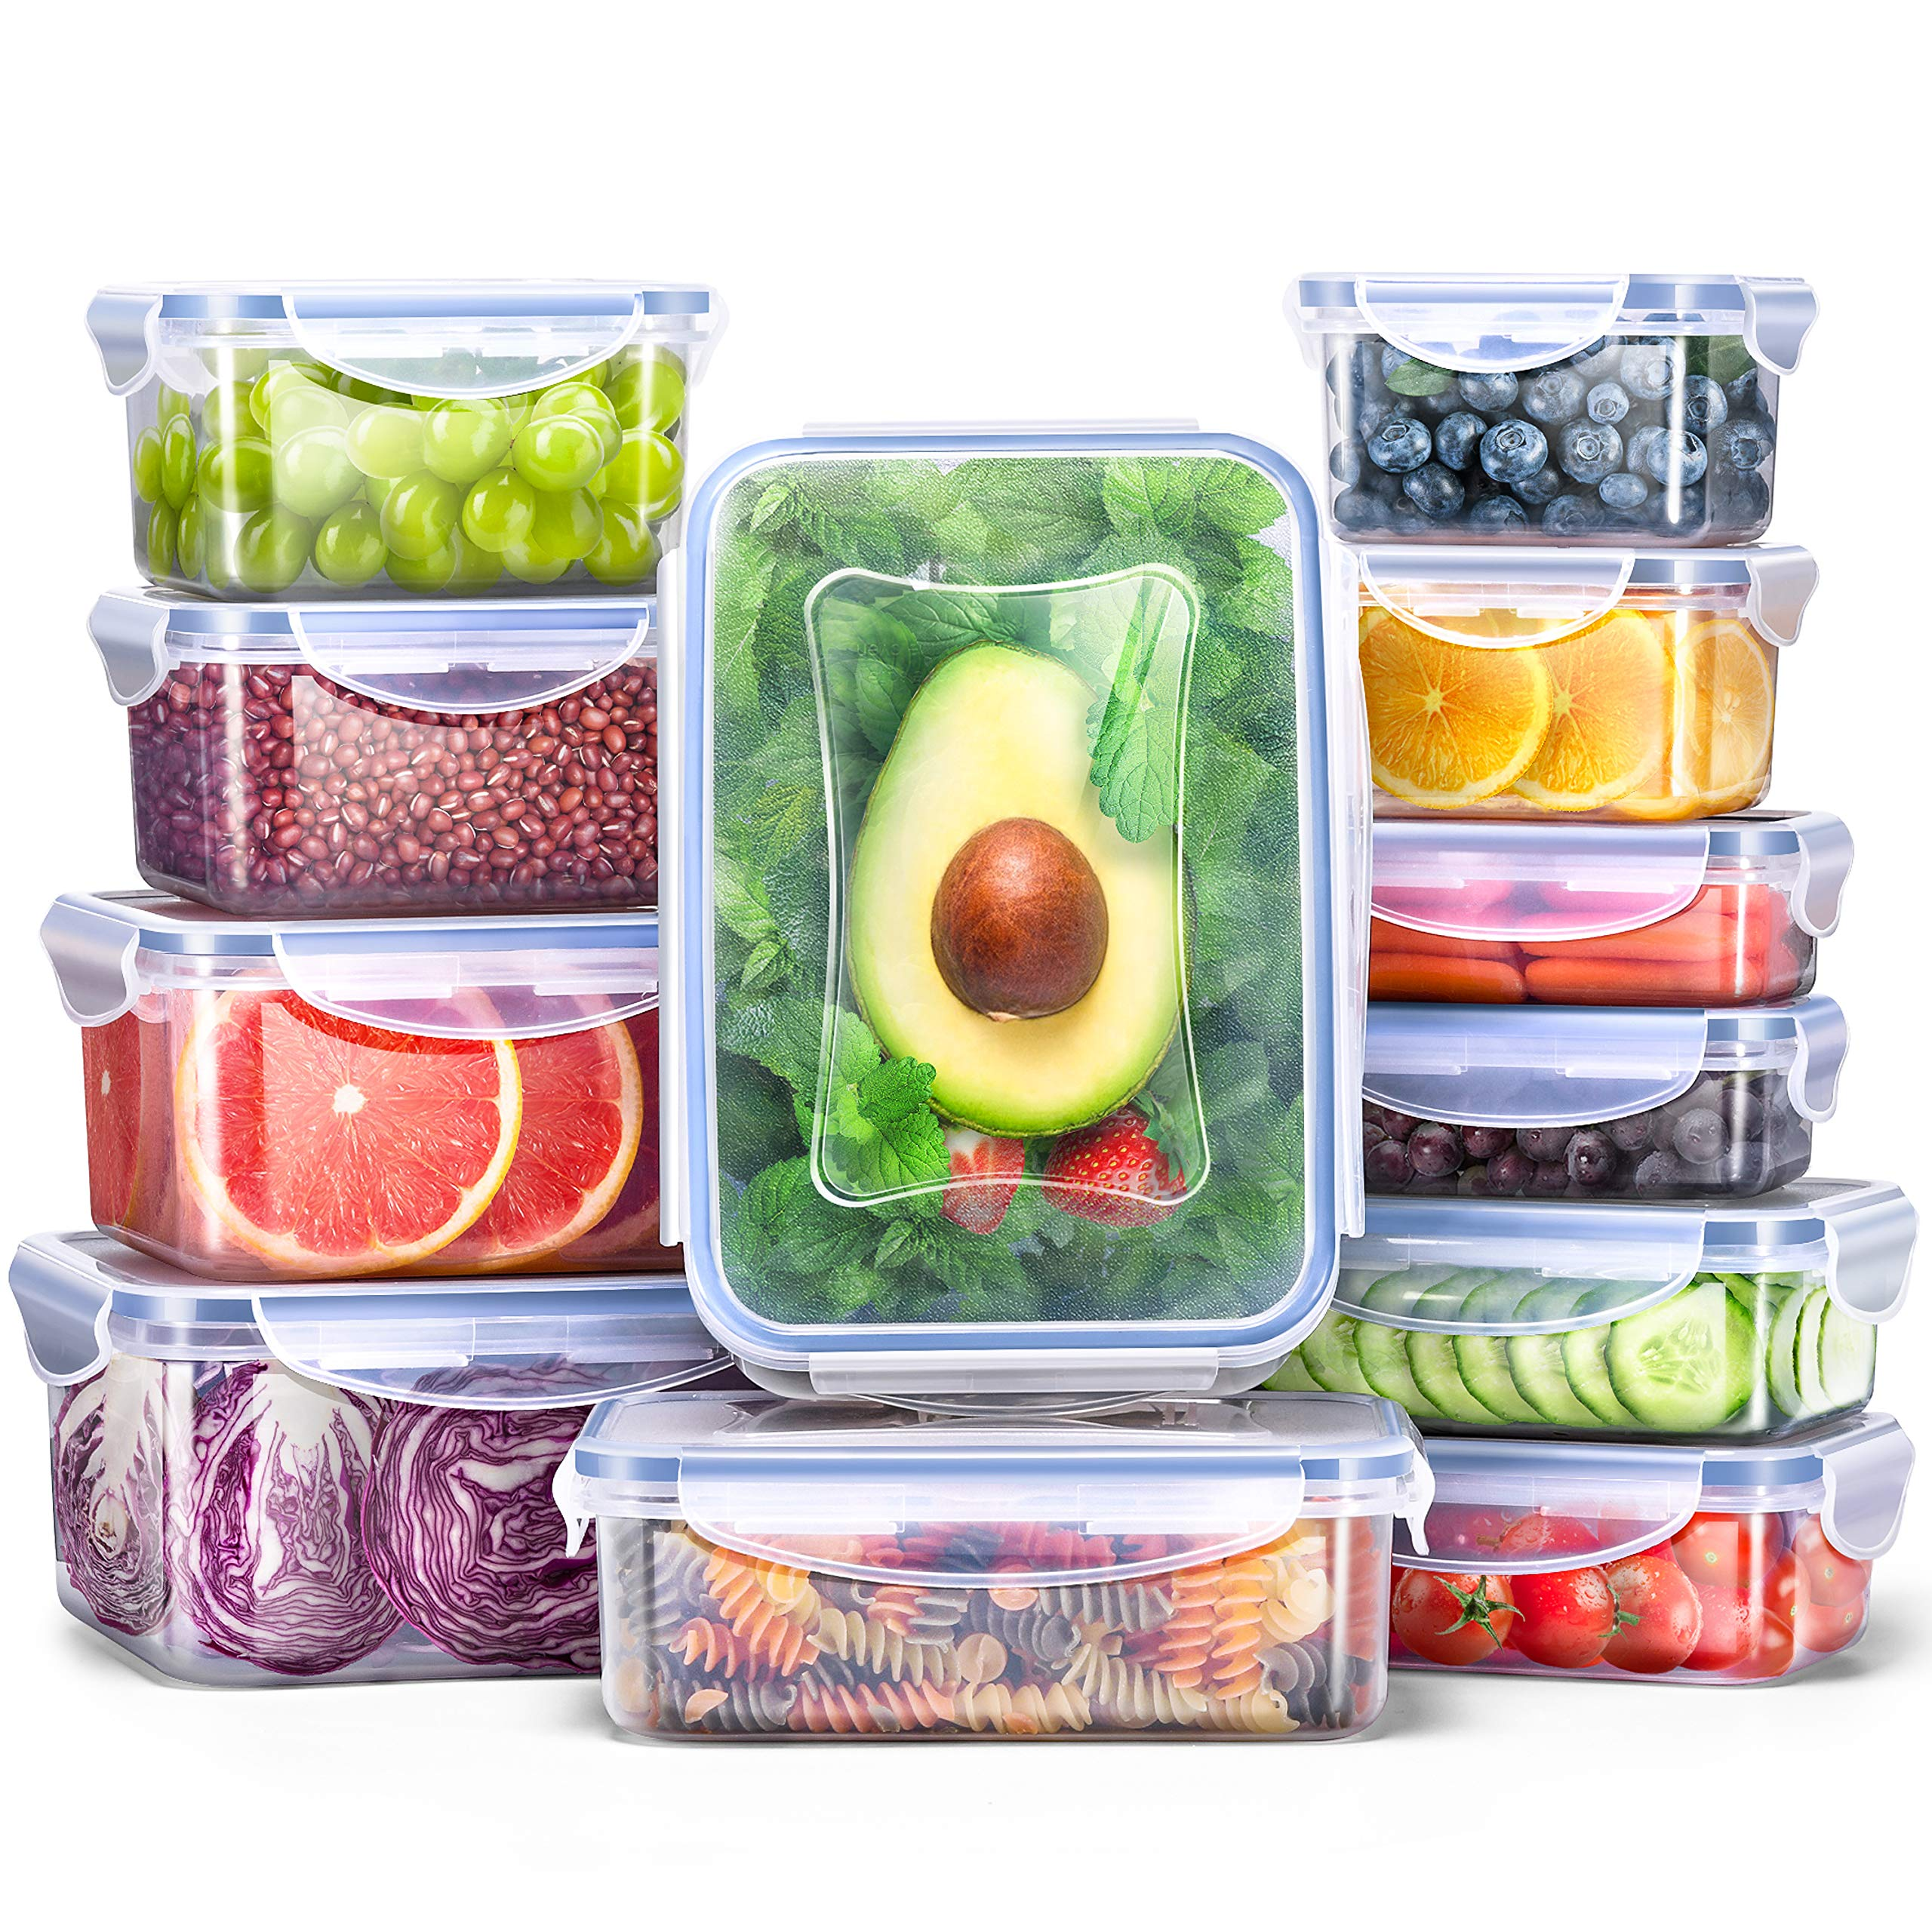 Veken Food Storage Containers with Airtight Lids, 12 Pack Plastic BPA Free, Reusable, Stackable Meal Prep Containers and Bento Lunch Boxes, Microwave, Freezer, Dishwasher Safe by Veken